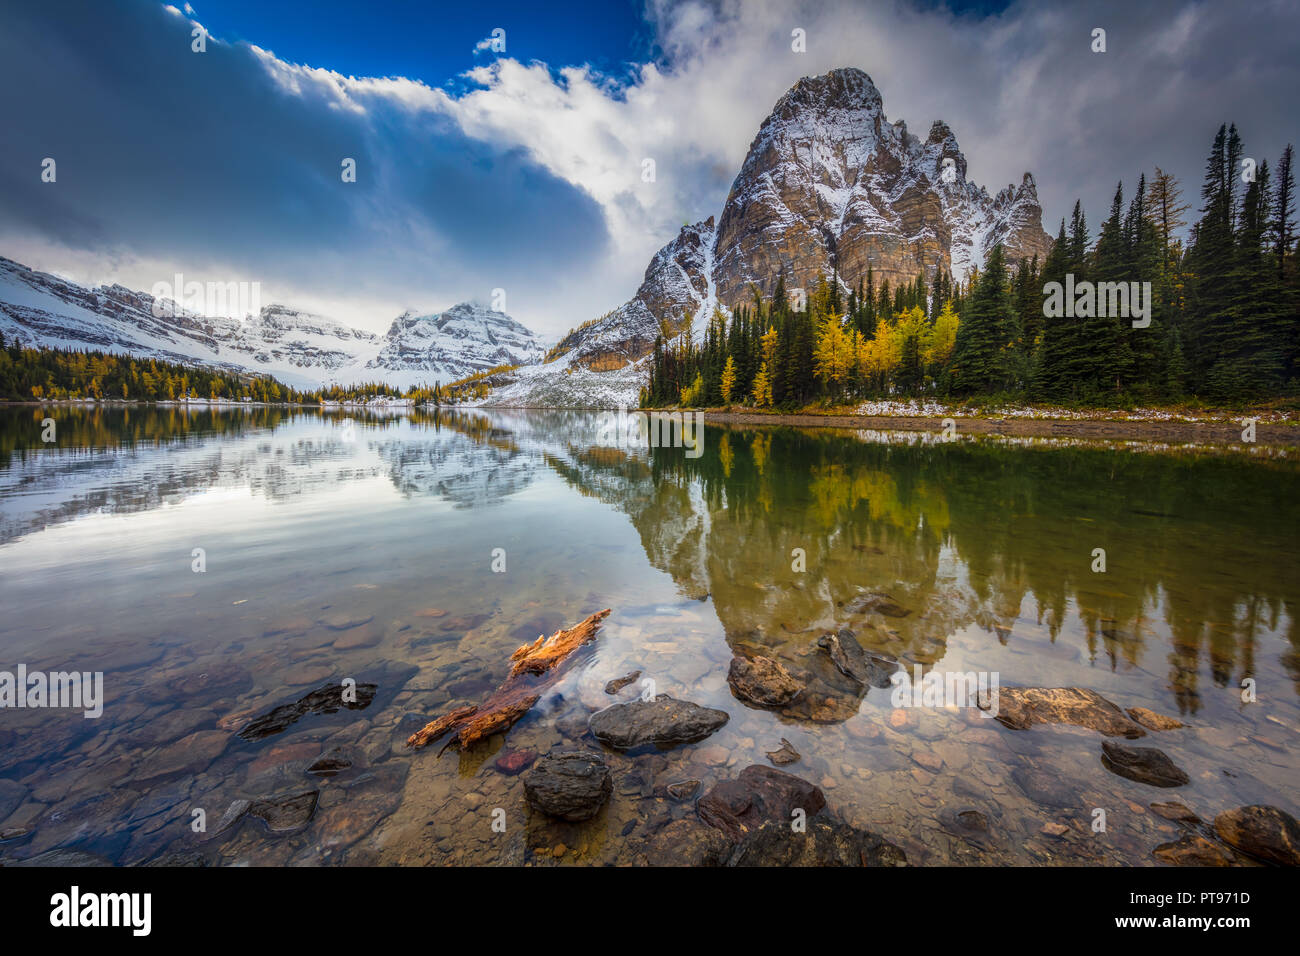 Mount Assiniboine Provincial Park is a provincial park in British Columbia, Canada, located around Mount Assiniboine. Stock Photo